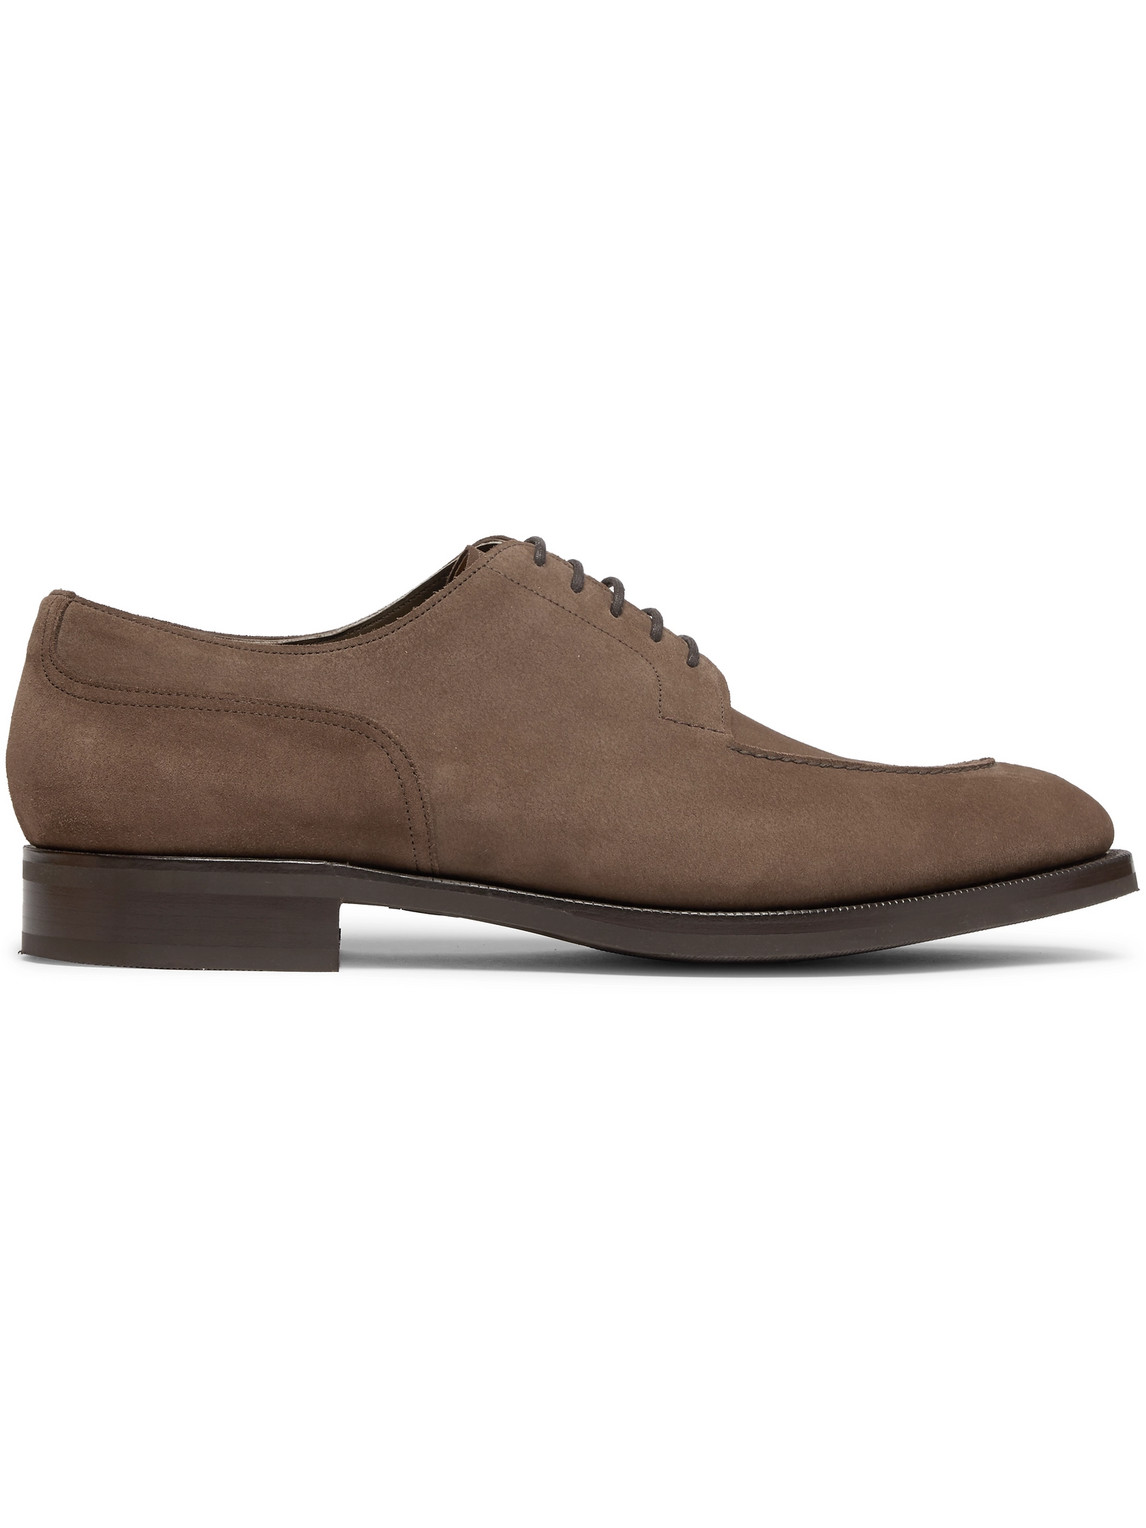 edward green - dover textured-leather derby shoes - men - brown - uk 10